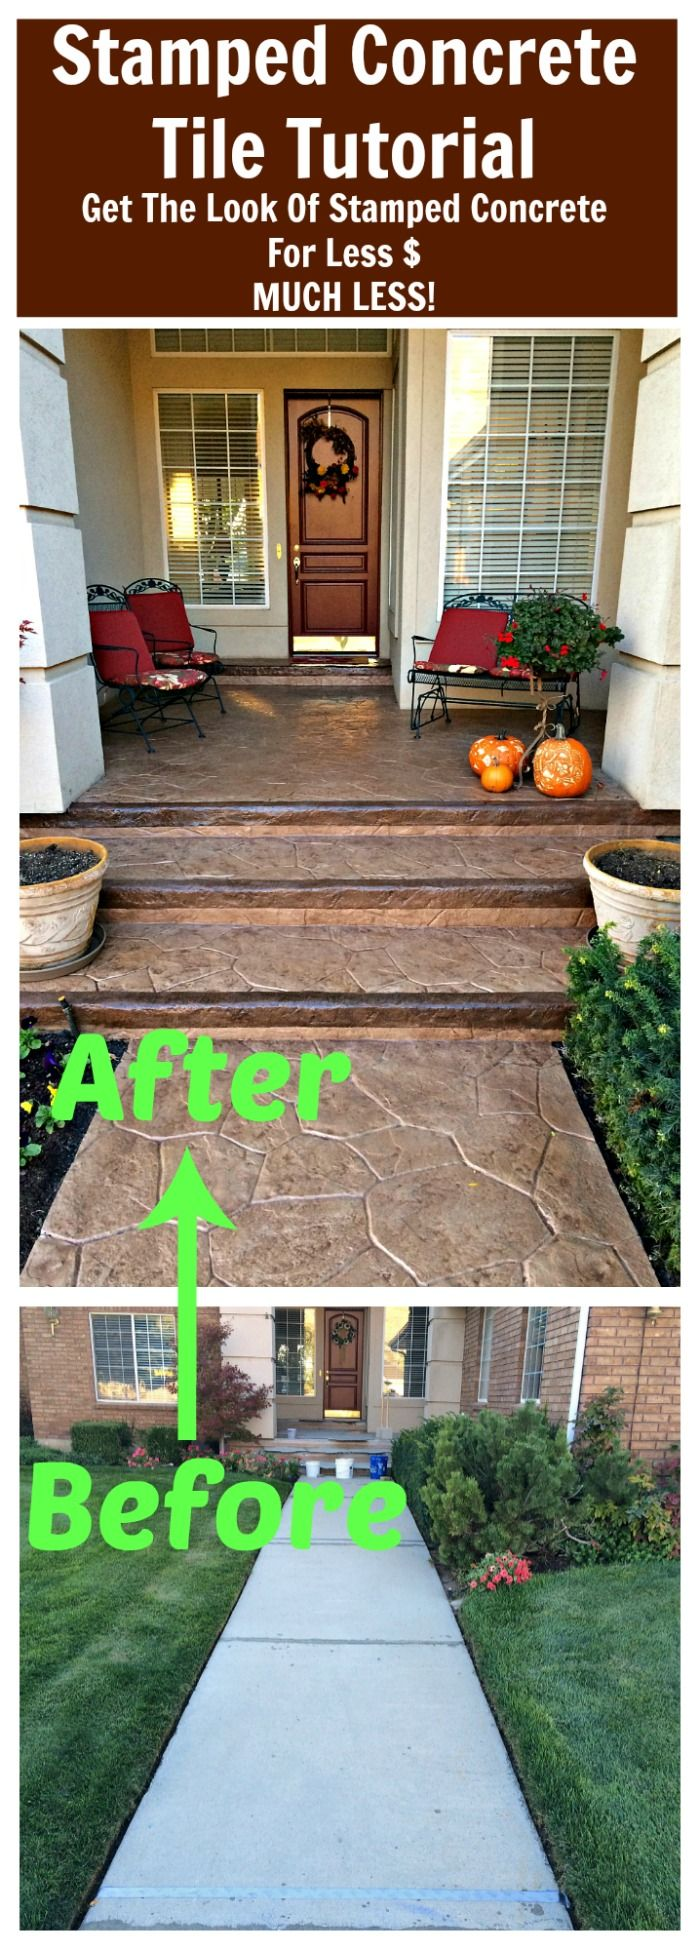 Diy Stamped Concrete Tile Tutorial Do It Yourself Fun Ideas Diy Stamped Concrete Backyard Patio Designs Concrete Patio